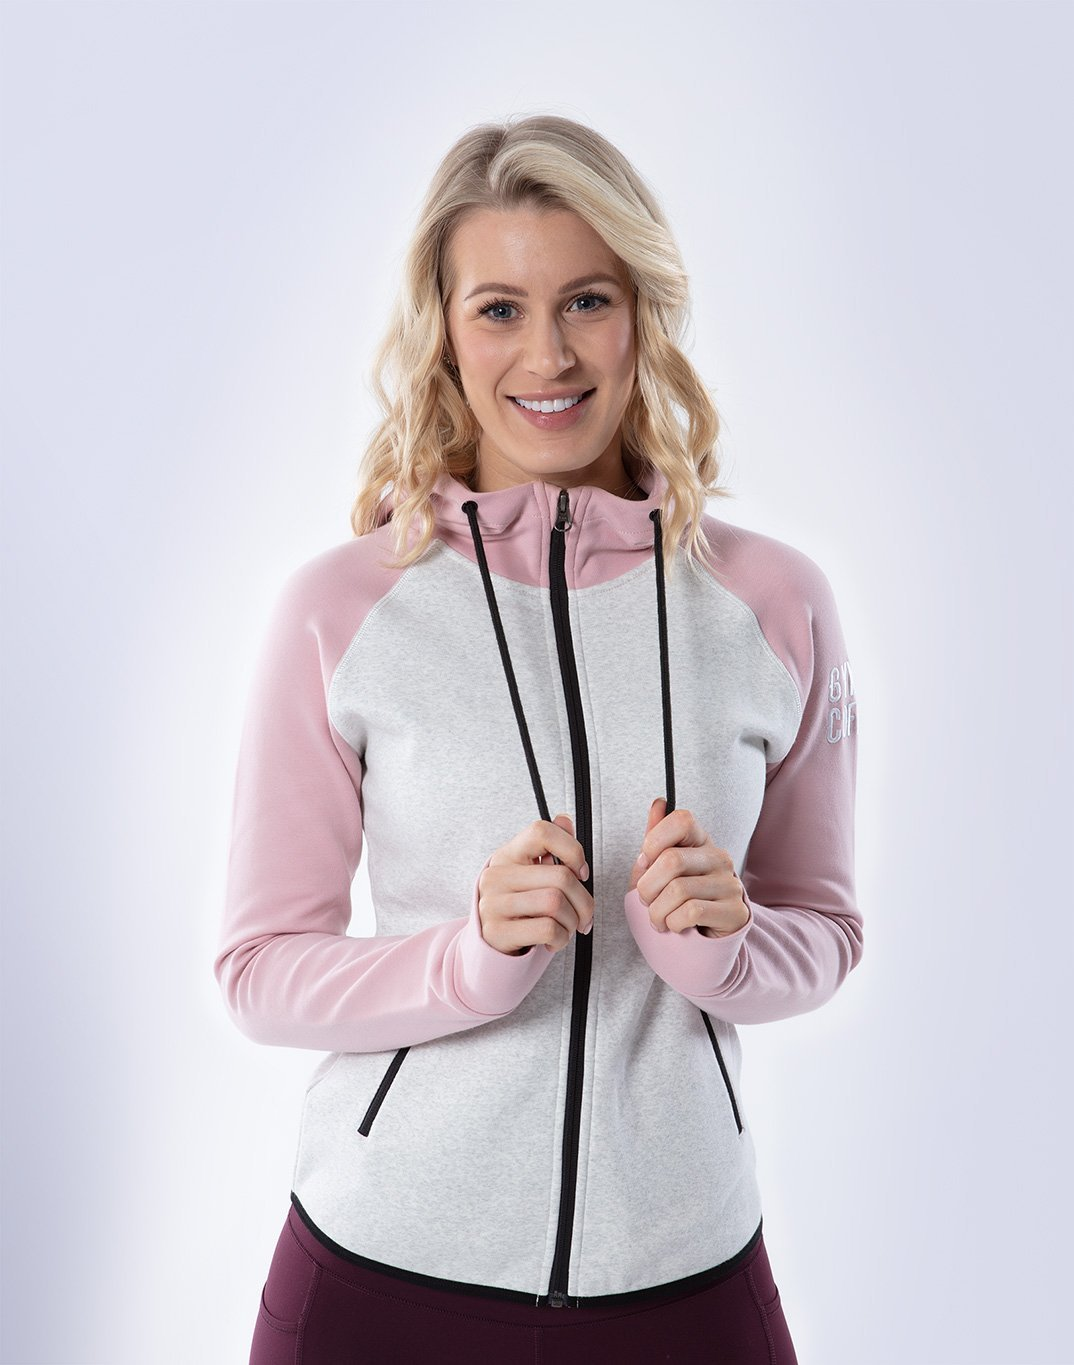 Gym Plus Coffee Hoodie 2tone Chill Hoodie in Dusty Pink/Cream Designed in Ireland